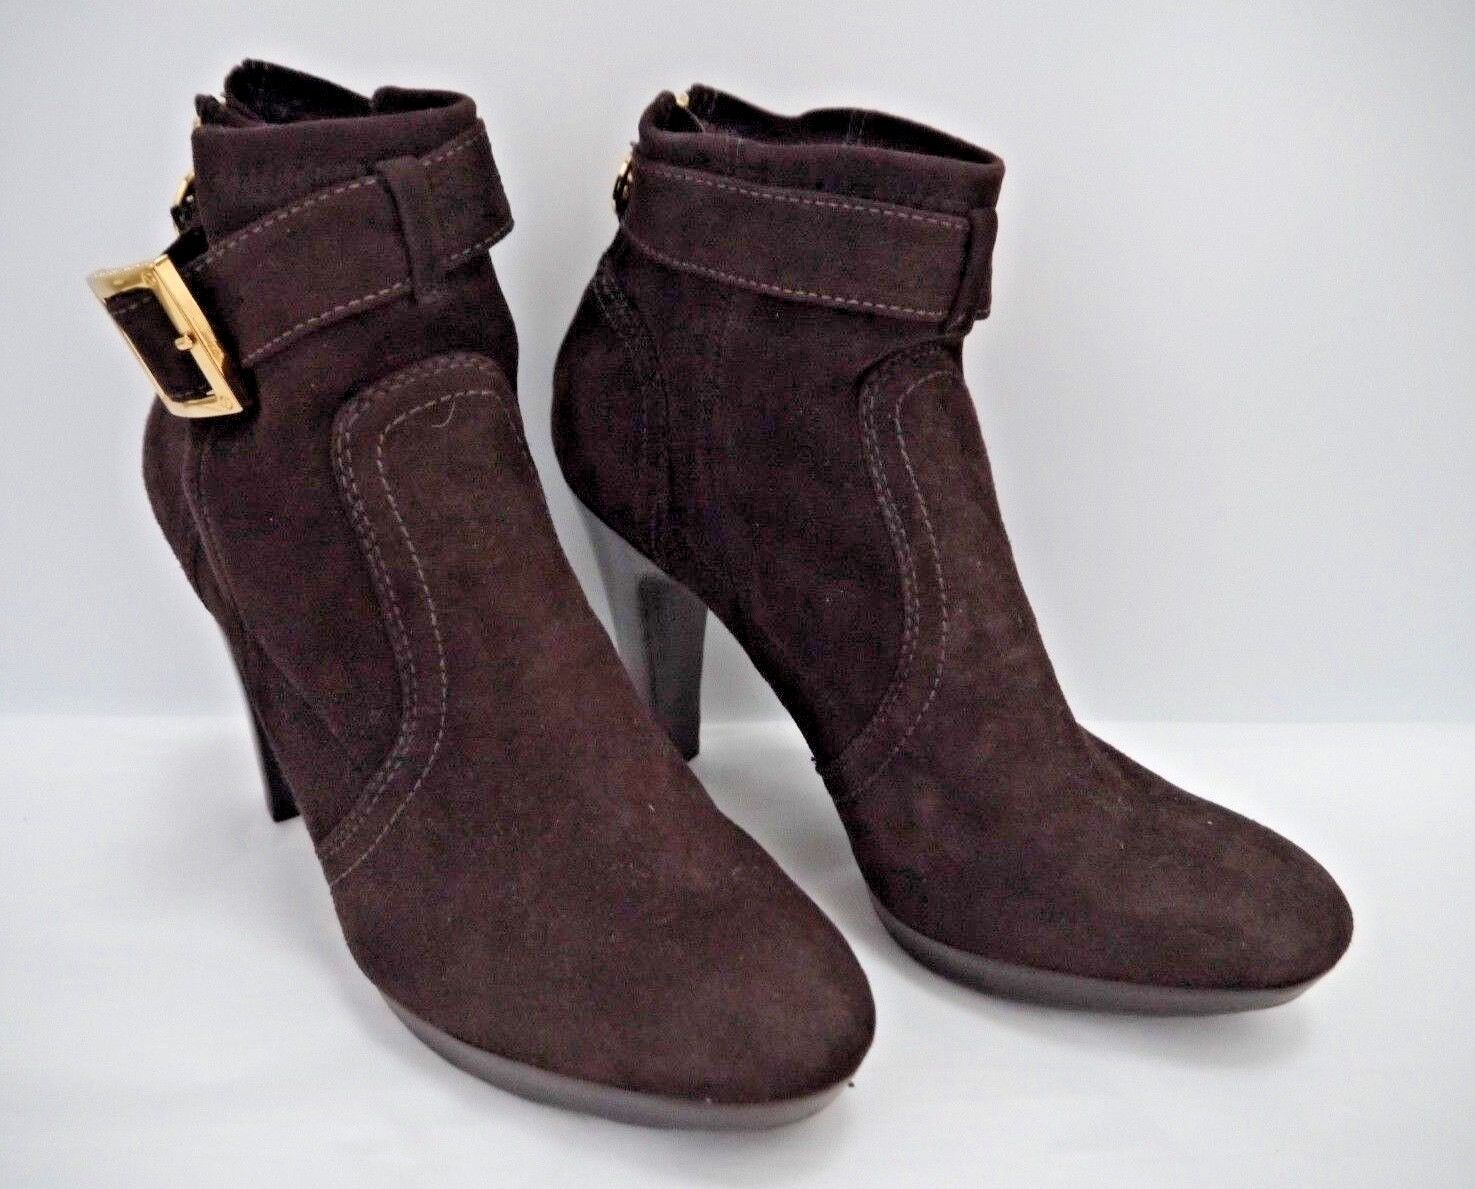 TORY BURCH $395 Melrose brown suede heeled ankle boots booties 9.5 WORN ONCE